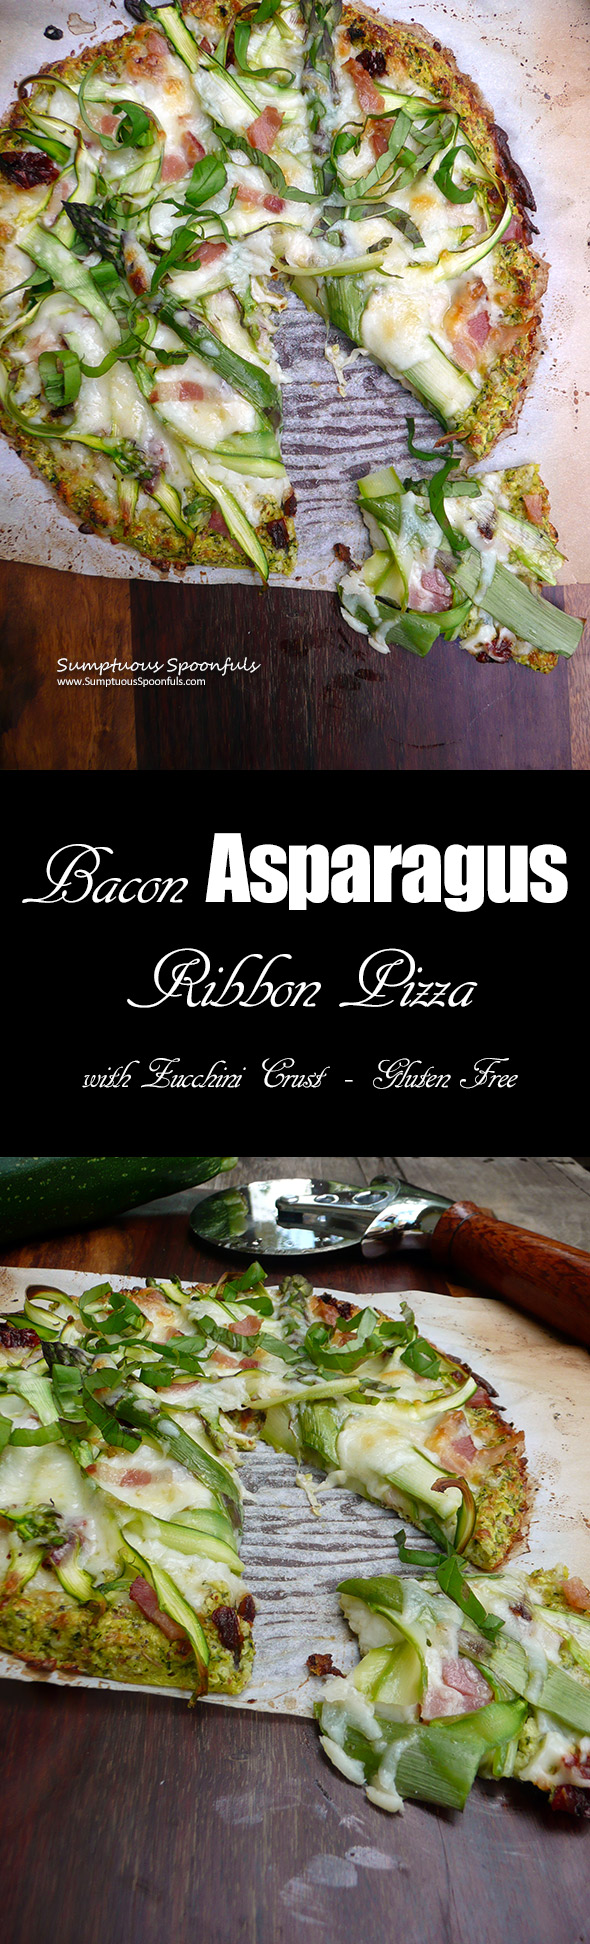 Bacon Asparagus Ribbon Pizza with Zucchini Crust ~ Sumptuous Spoonfuls #healthy #flourless #pizza #recipe